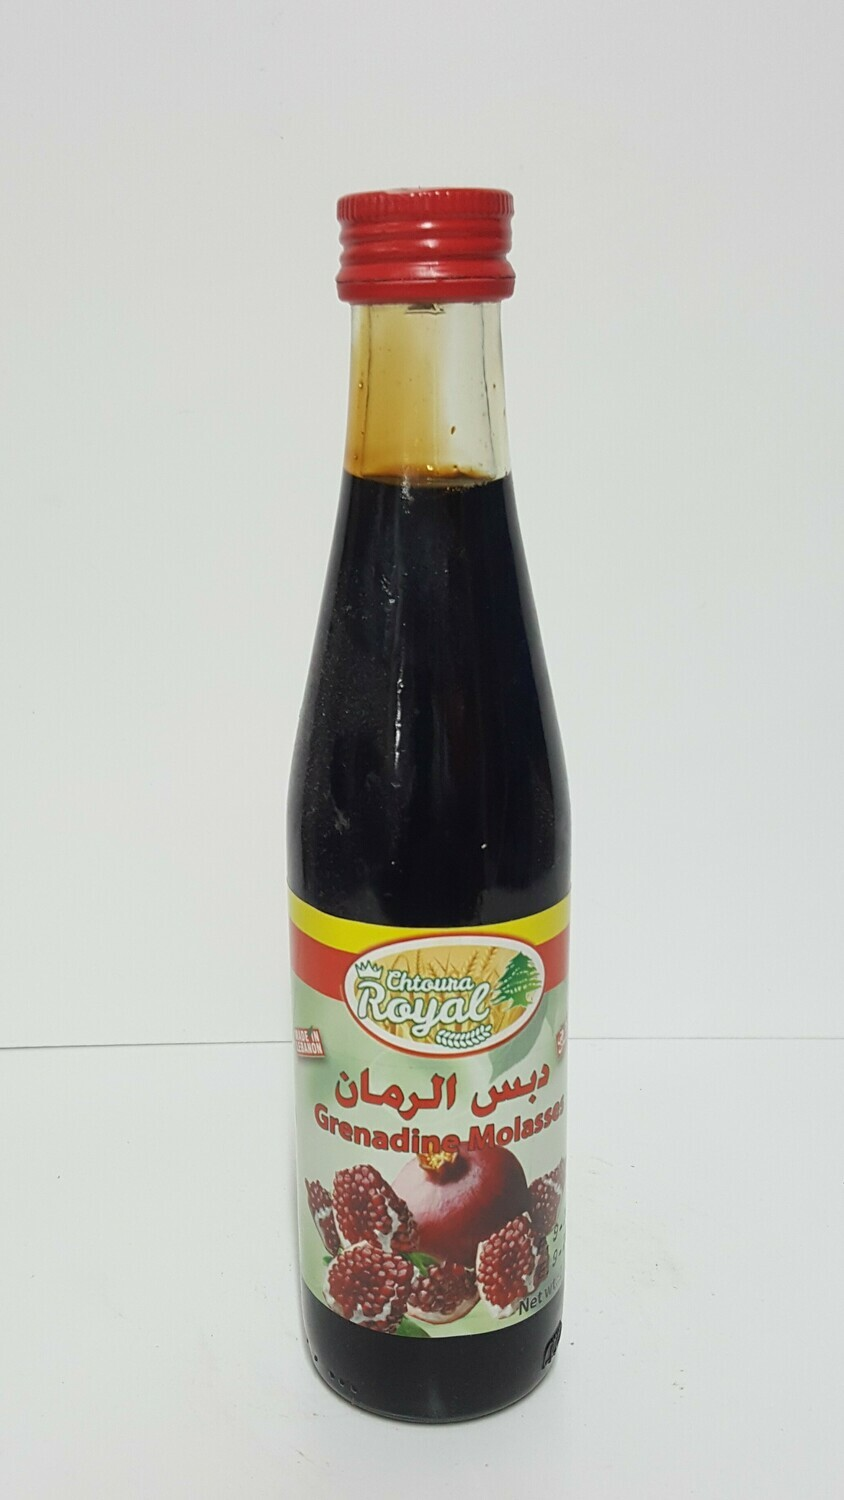 Grenadine Molasses CHTOURA ROYAL 270 ml